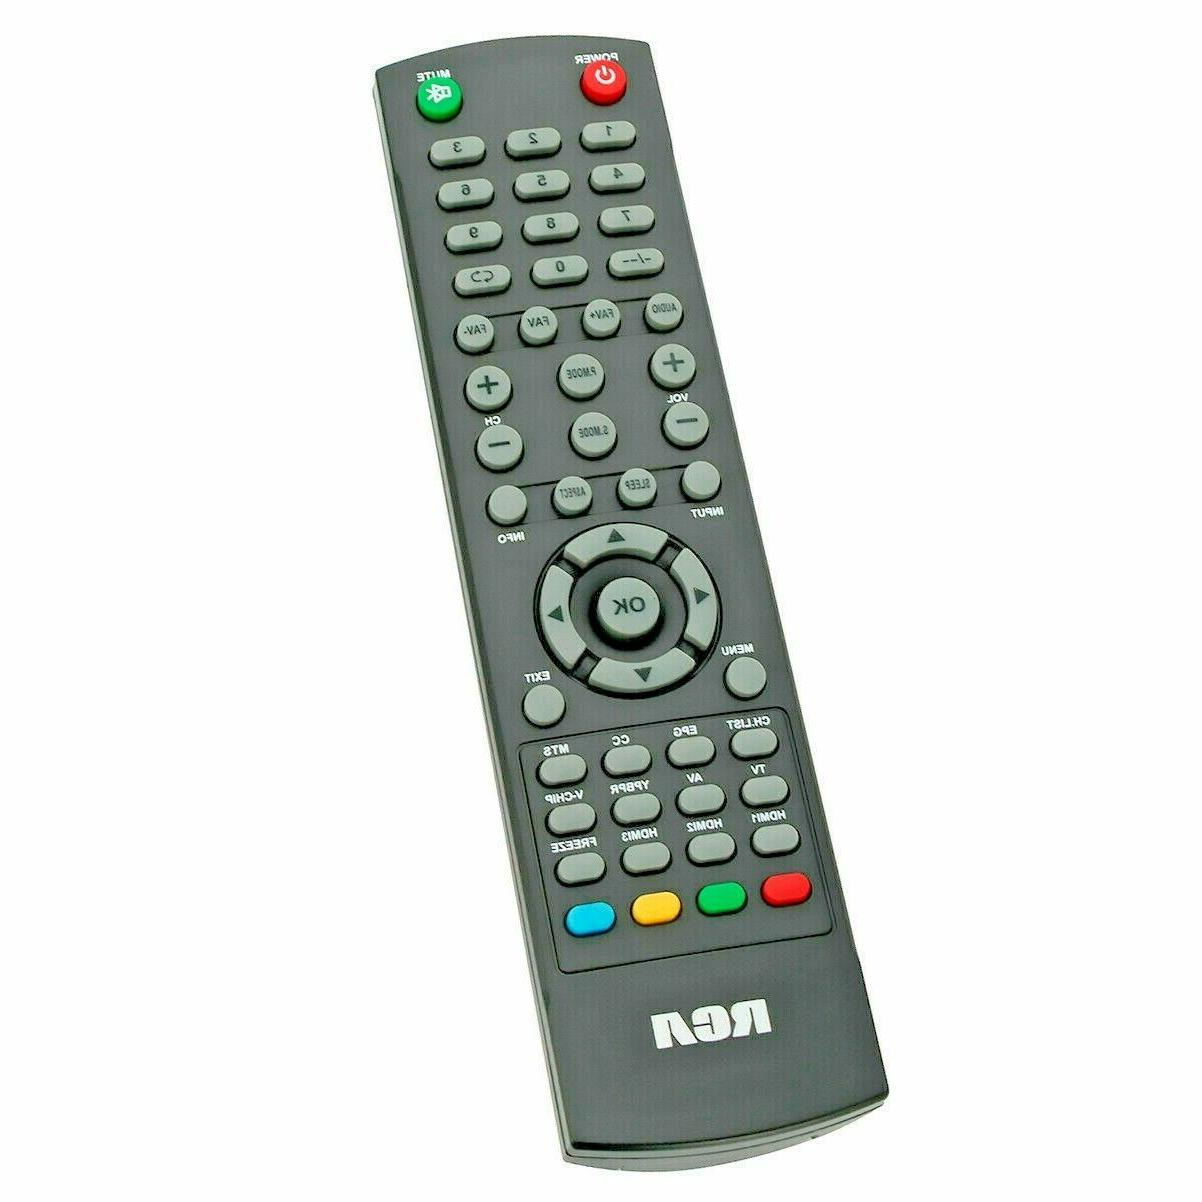 New TV Remote Control for RCA LCD HDTV RTU5540-B RLDED4016A-